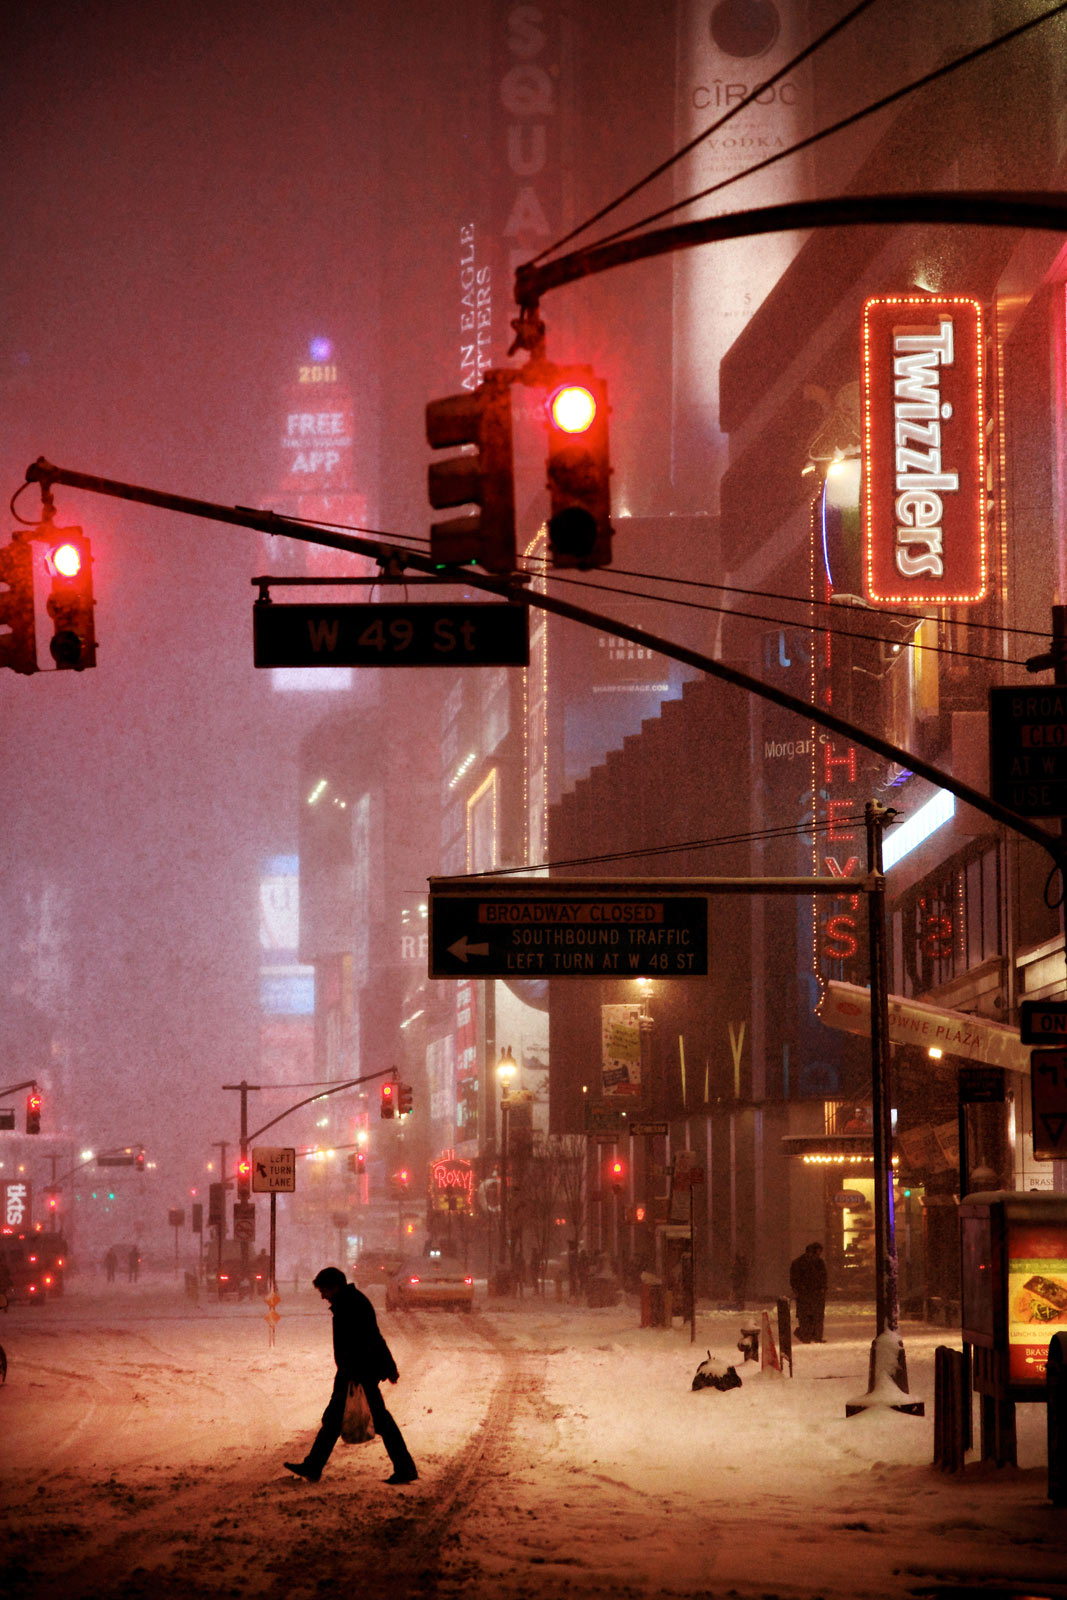 Twizz by Christophe Jacrot